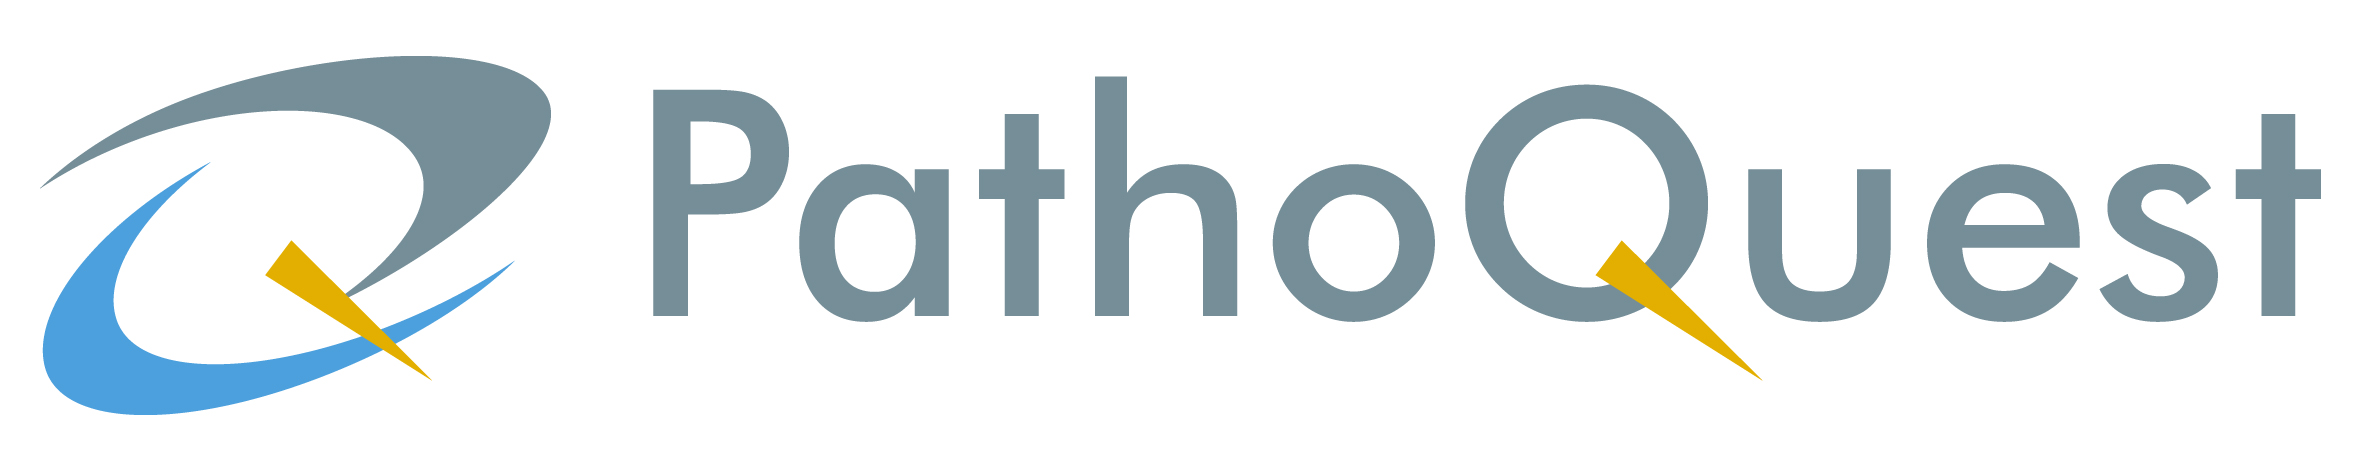 Pathoquest_logo